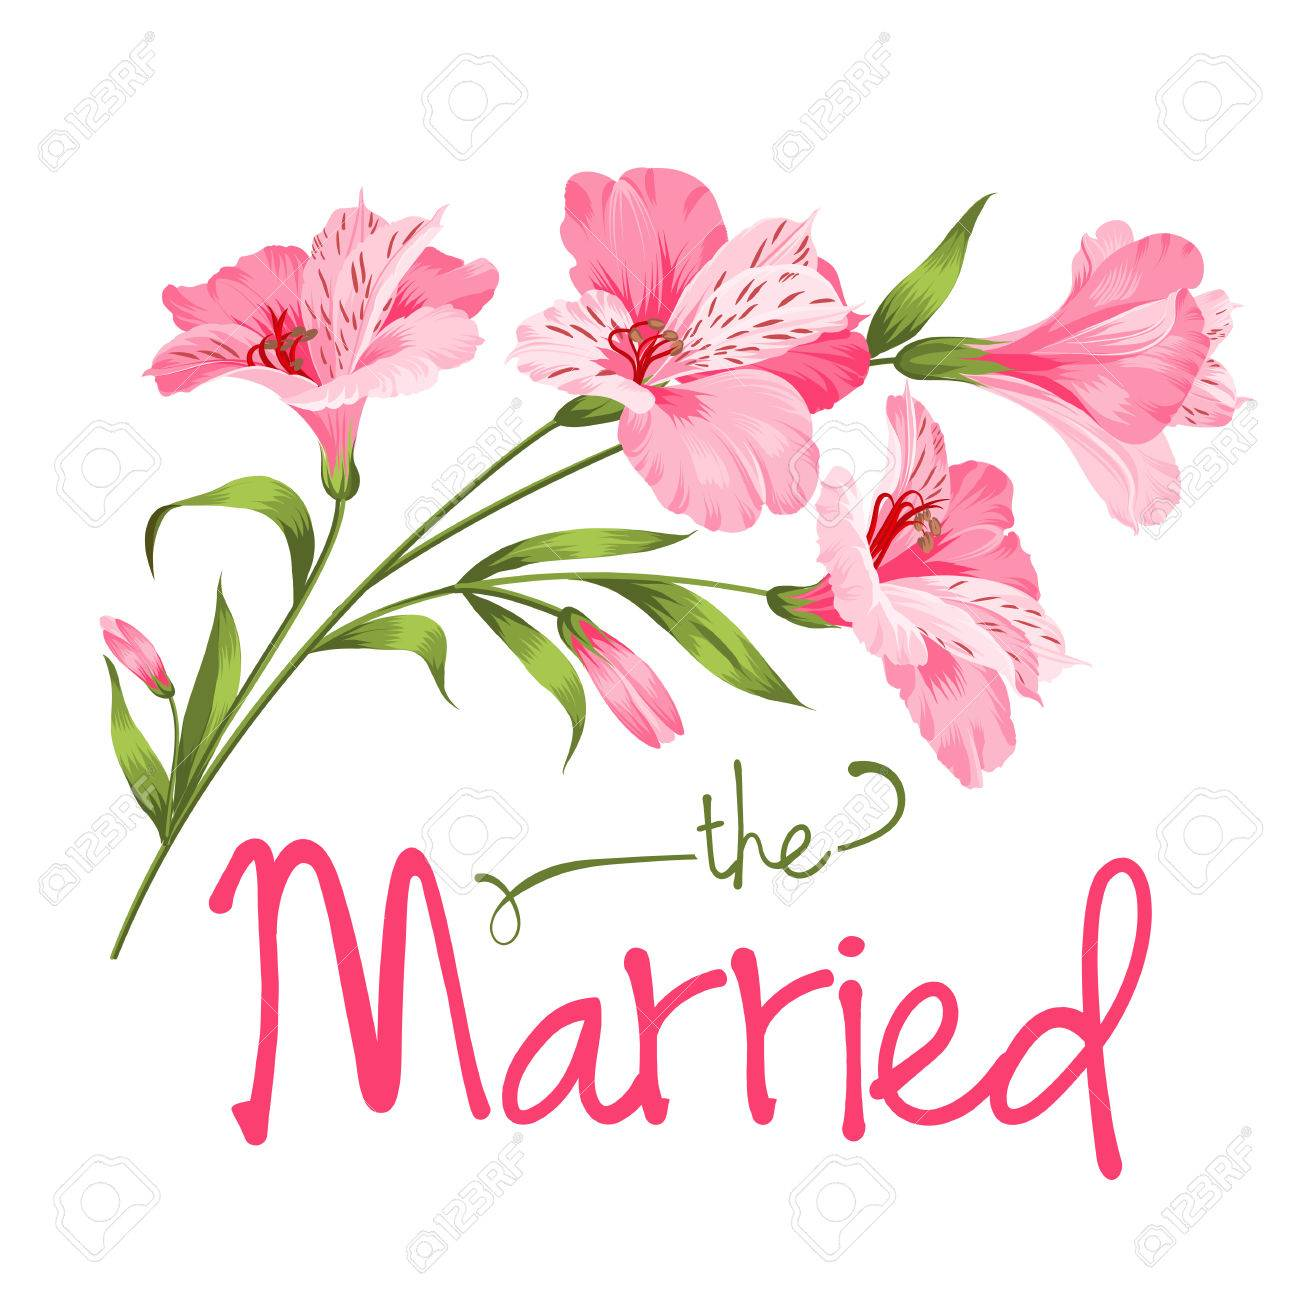 The married card. Wedding card template. Alstromeria pink branch isolated on white. Wedding invitation card with pink flowers. Vector illustration. - 47041293